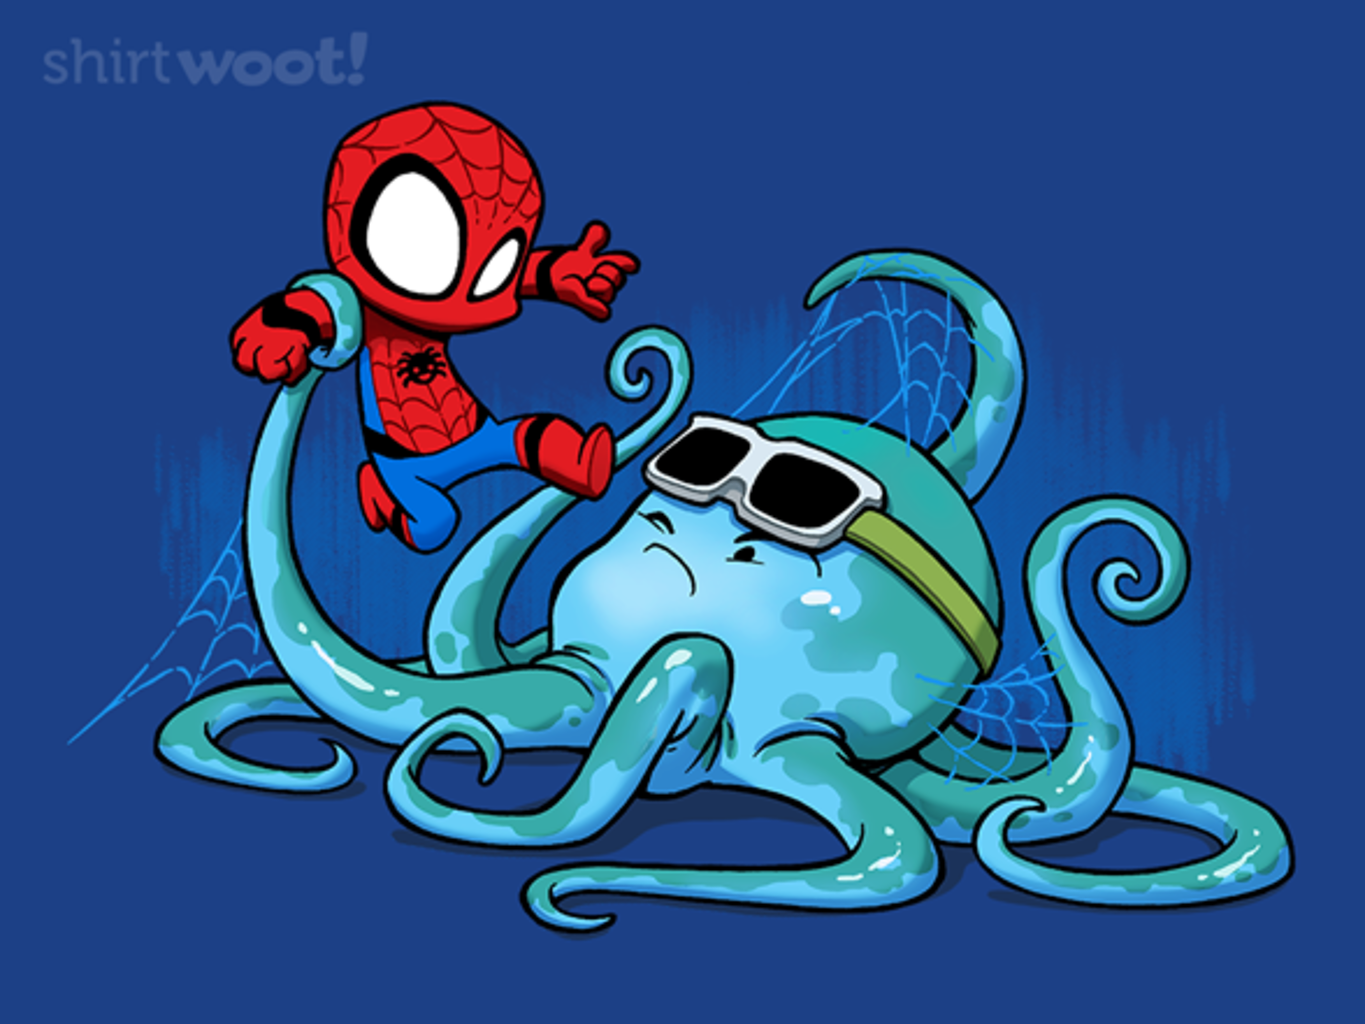 Woot!: Spider Vs Octopus